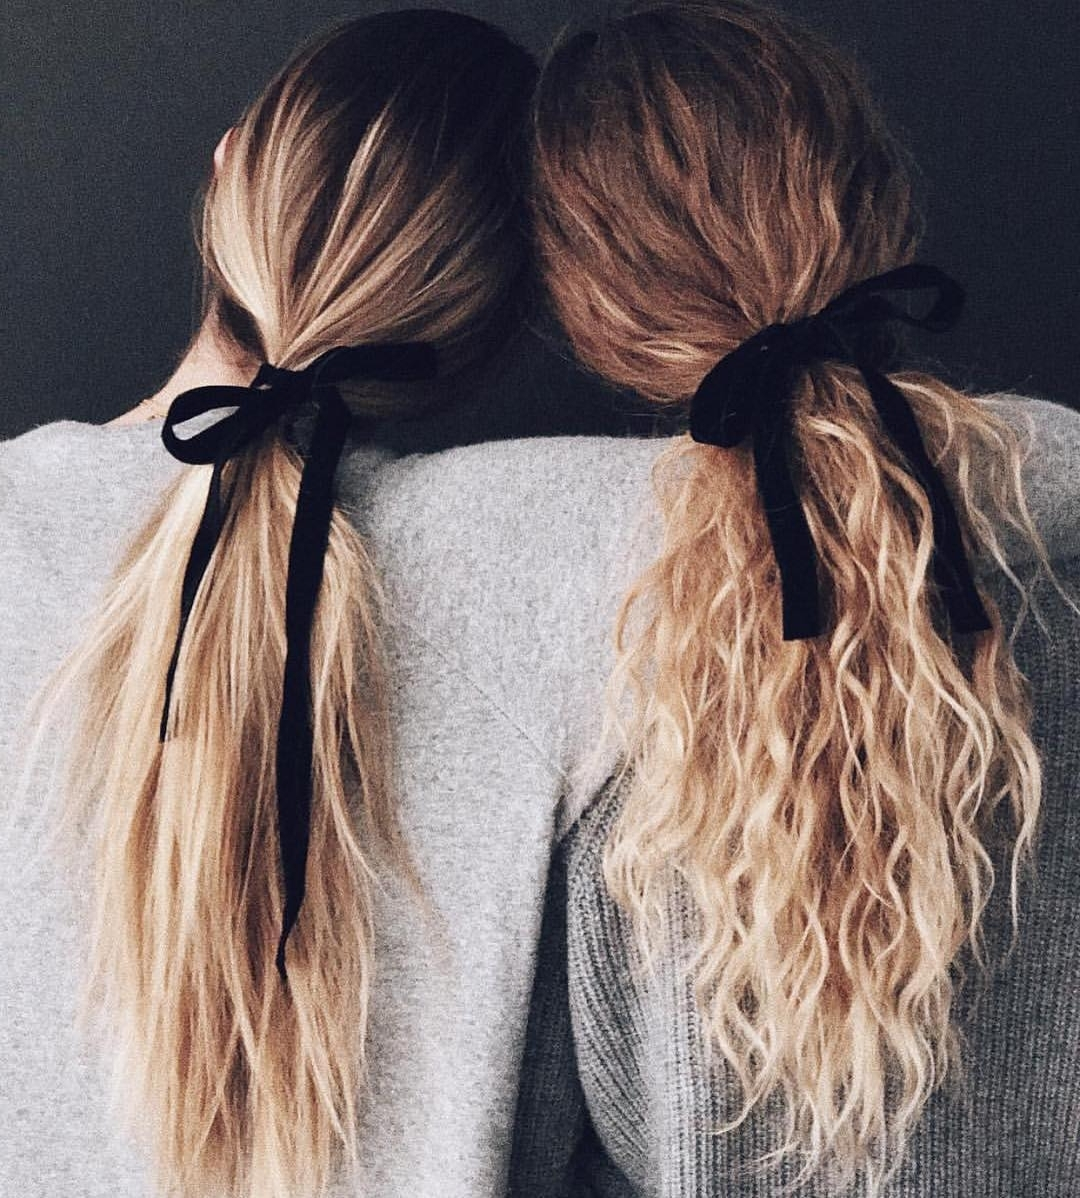 Trendiest Ponytail Hairstyle For Long Hair, Easy Ponytails – Popular With Latest Ponytail Hairstyles For Layered Hair (View 14 of 20)